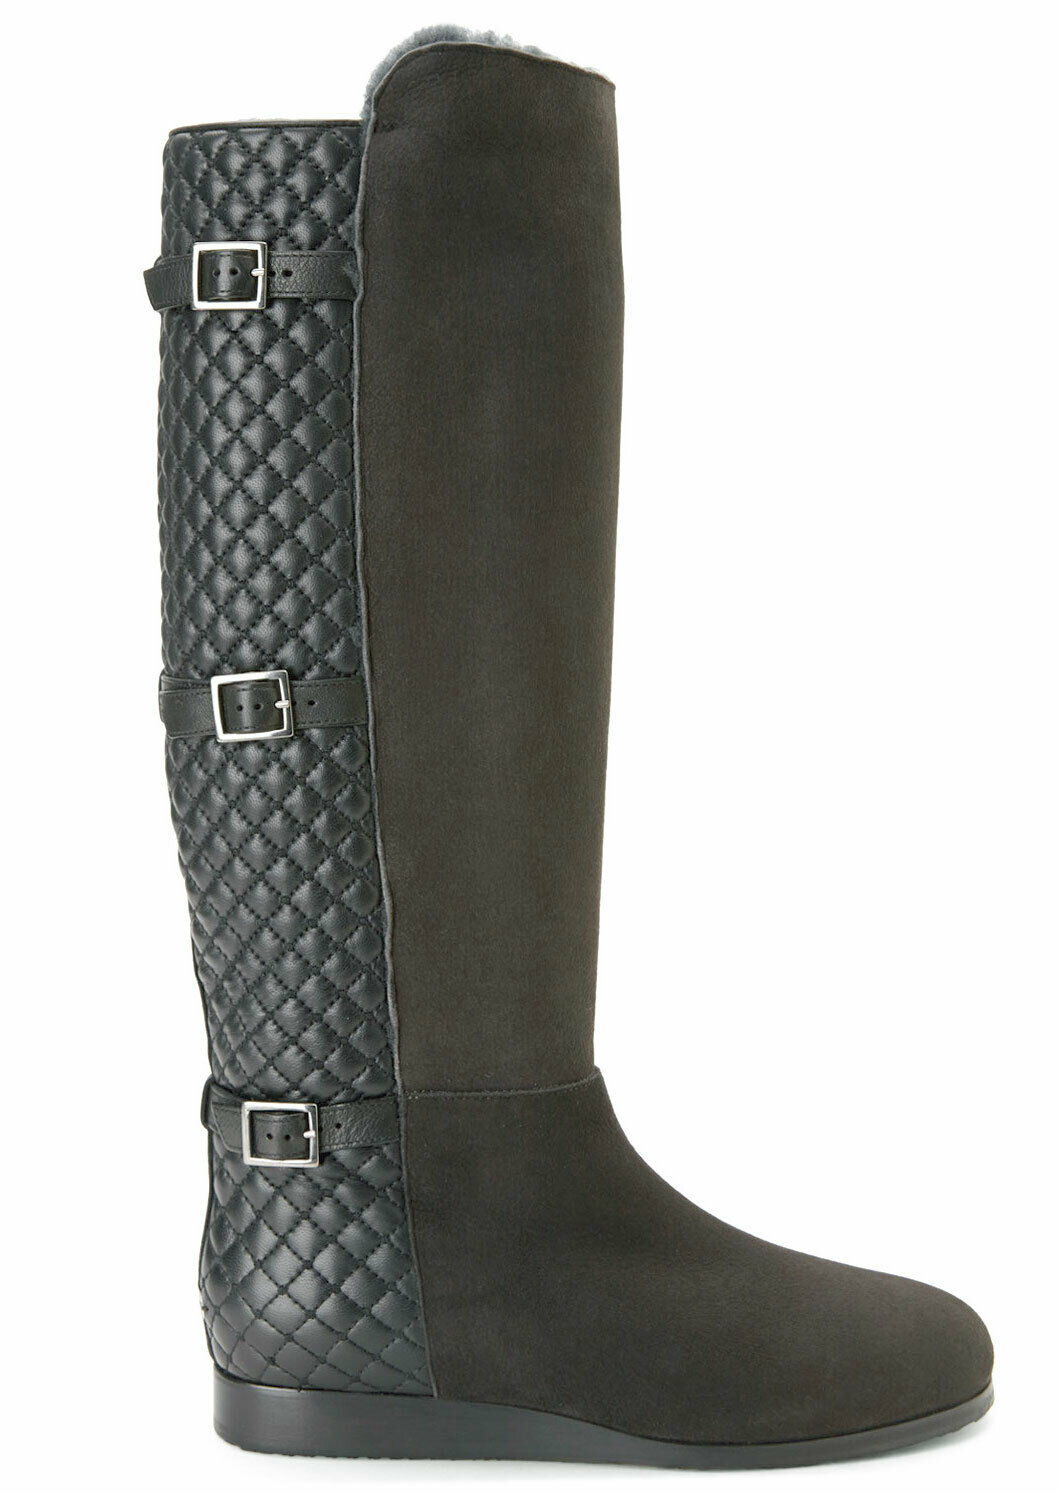 1790 Jimmy Choo Fur Lined Tall Knee Quilted Flat Riding Boots CHACE Booties 40